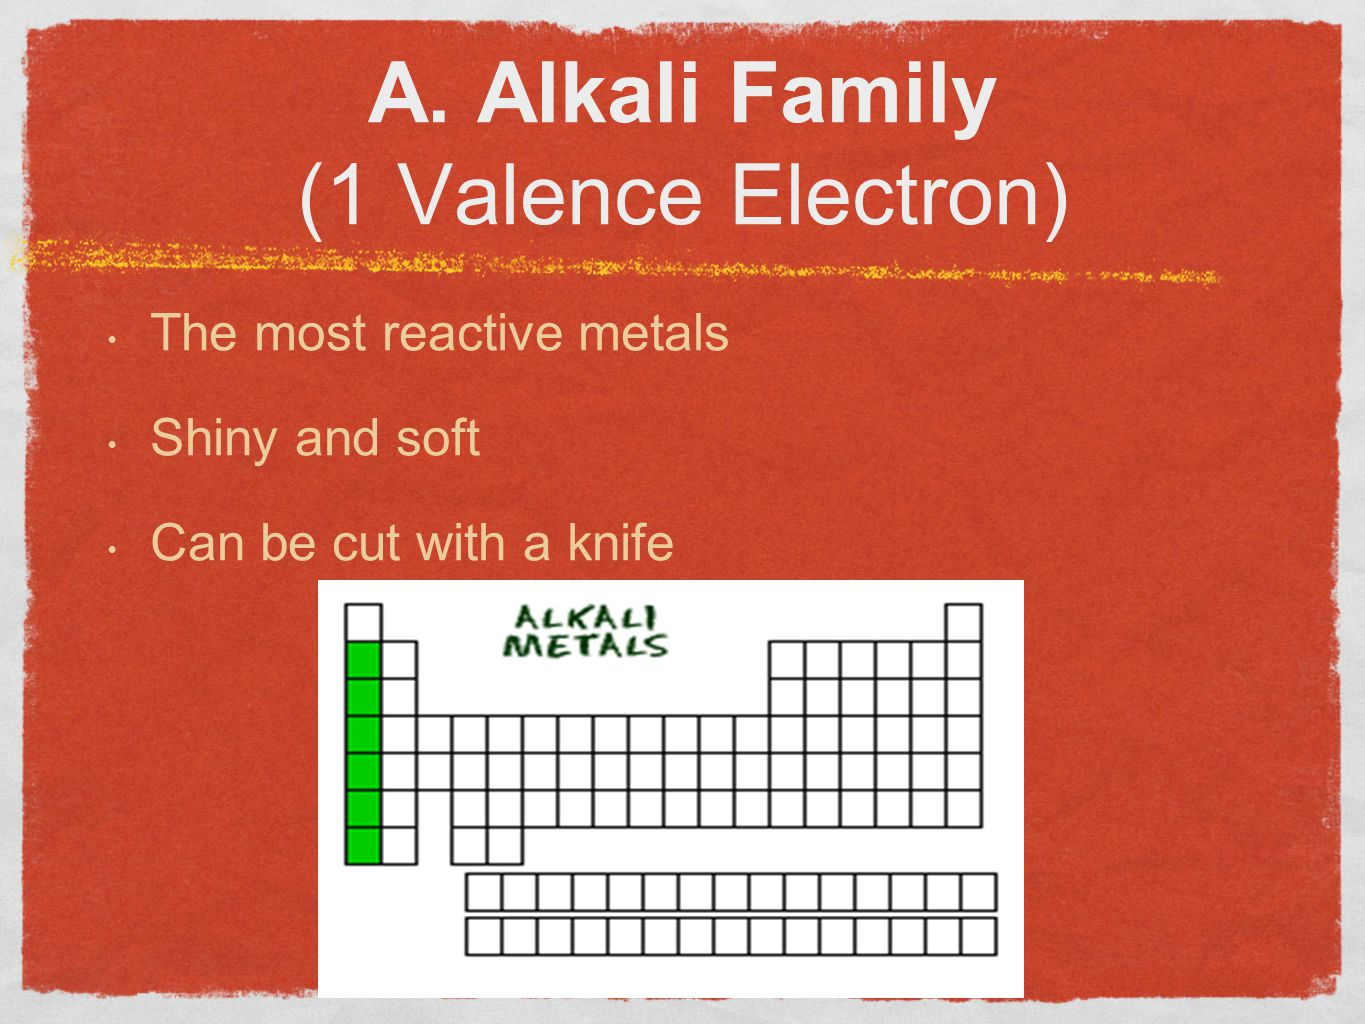 A. Alkali Family (1 Valence Electron)